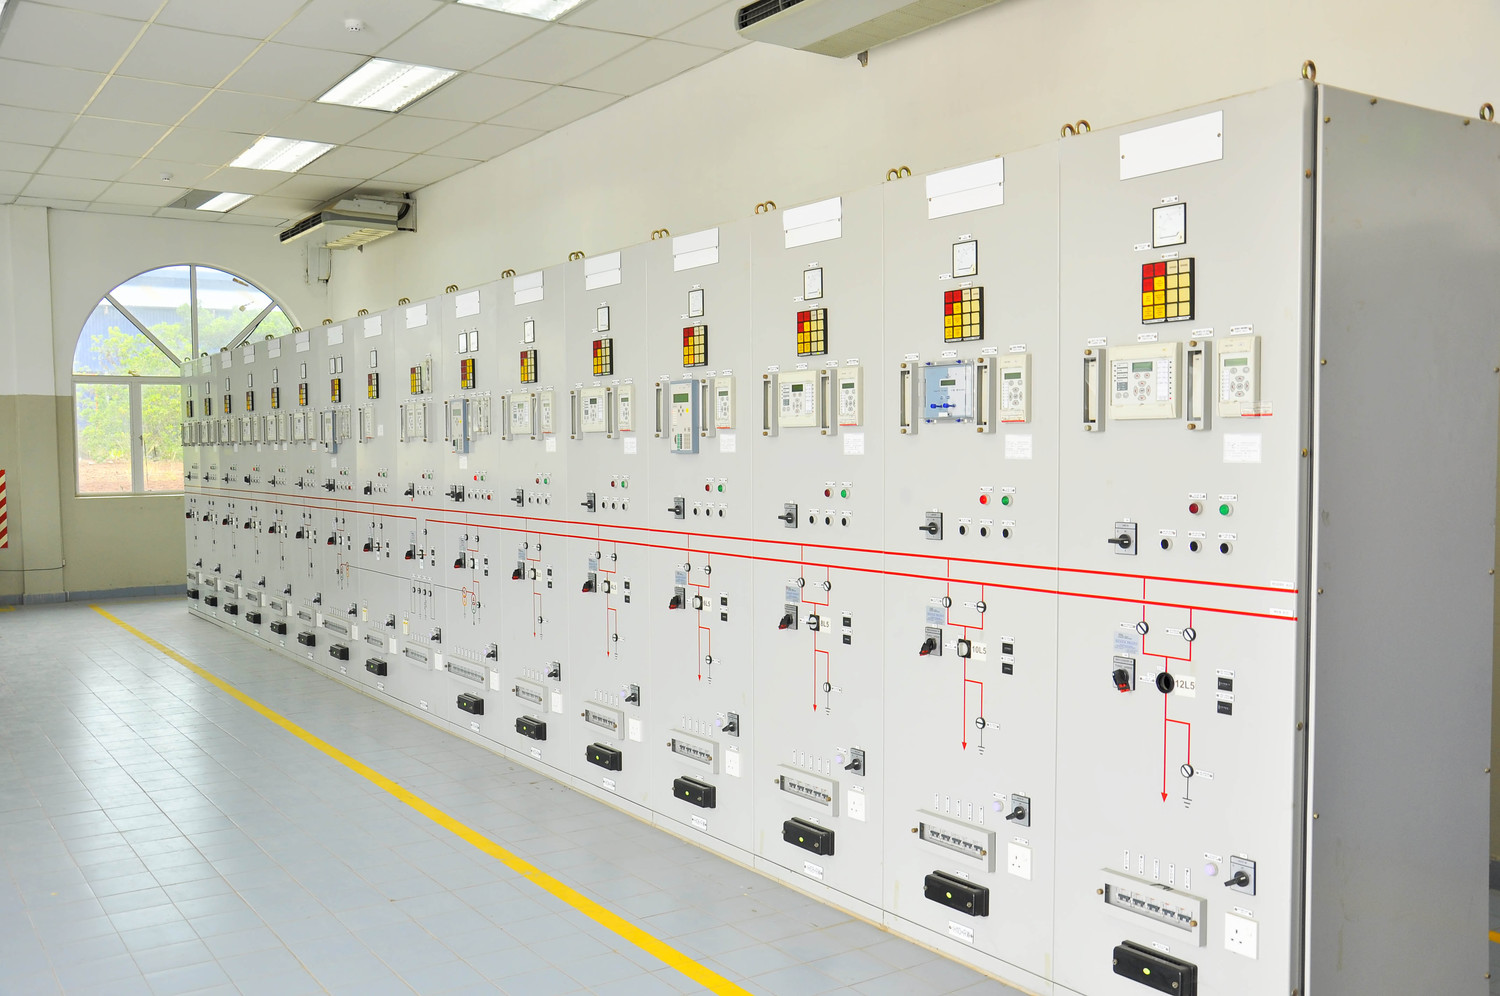 Powercom Electrical Testing Maintenance Engineering Experts Your Elctricity Home Oil Circuit Breakers Photo By Cexco Istock Getty Images